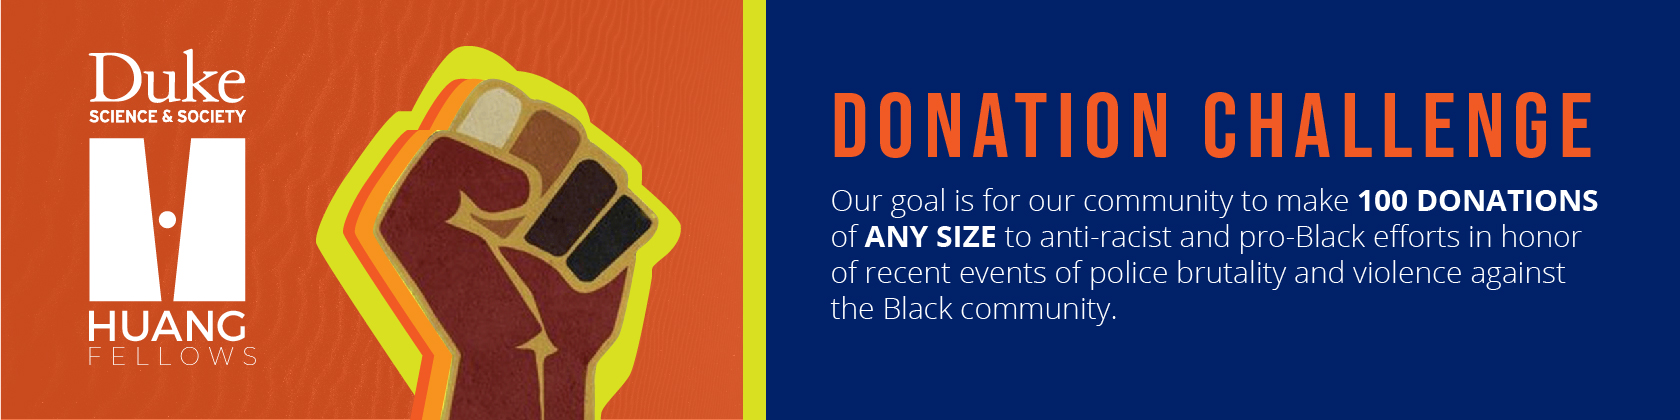 Huang Fellow Donation Challenge: Our goal is for our community to make 100 donations of any size to anti-racist and pro-Black efforts in honor of recent events